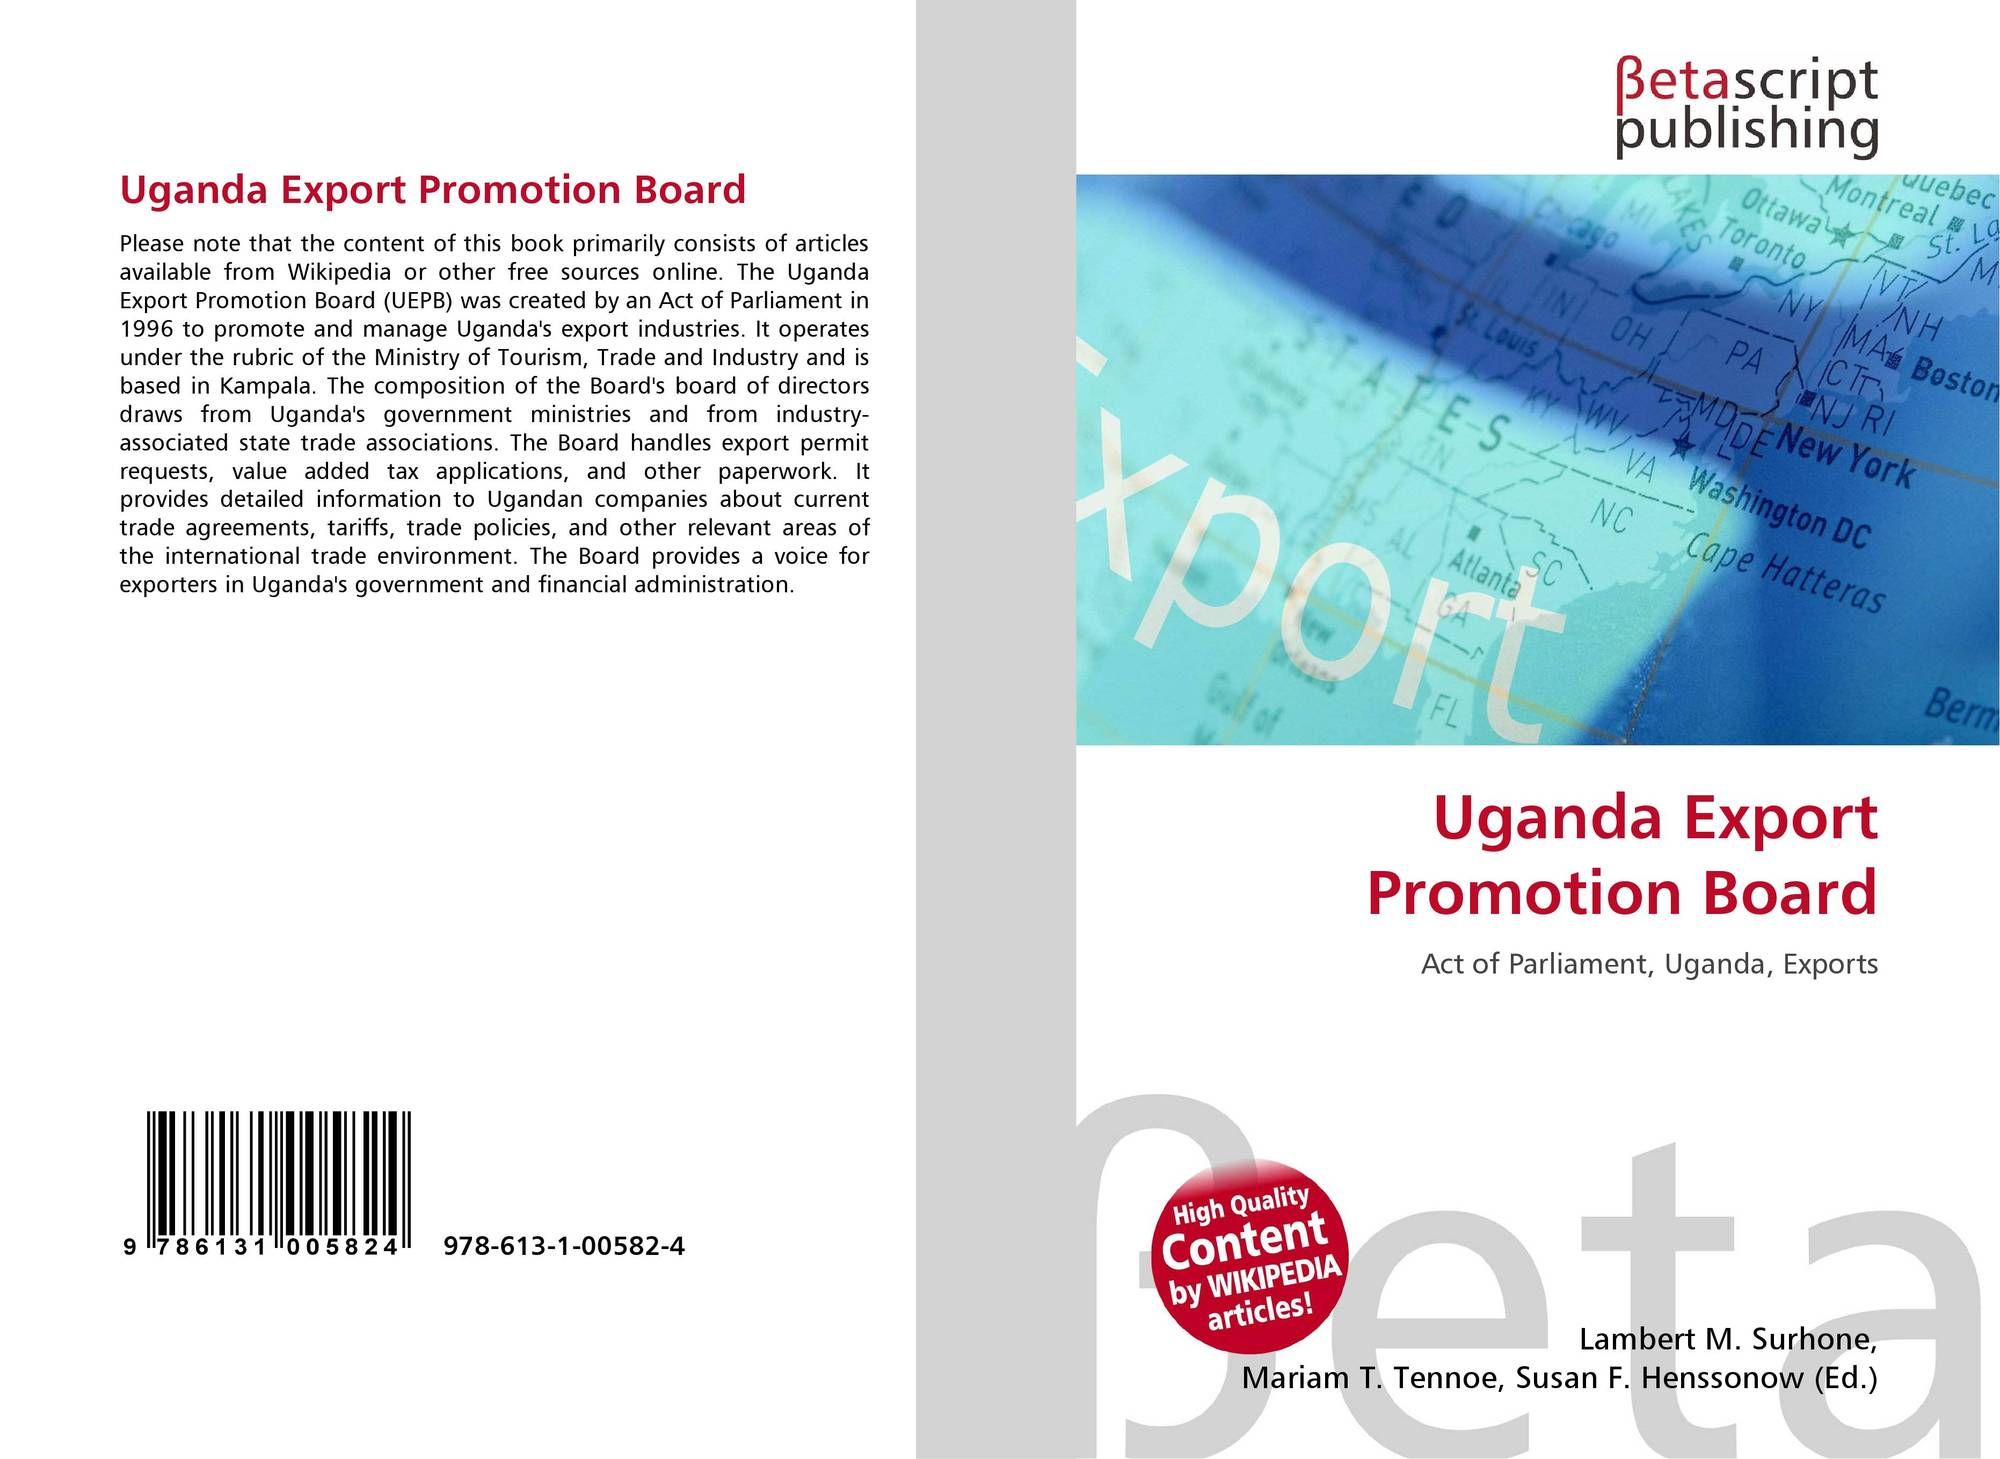 Uganda Export Promotion Board, 978-613-1-00582-4, 6131005826